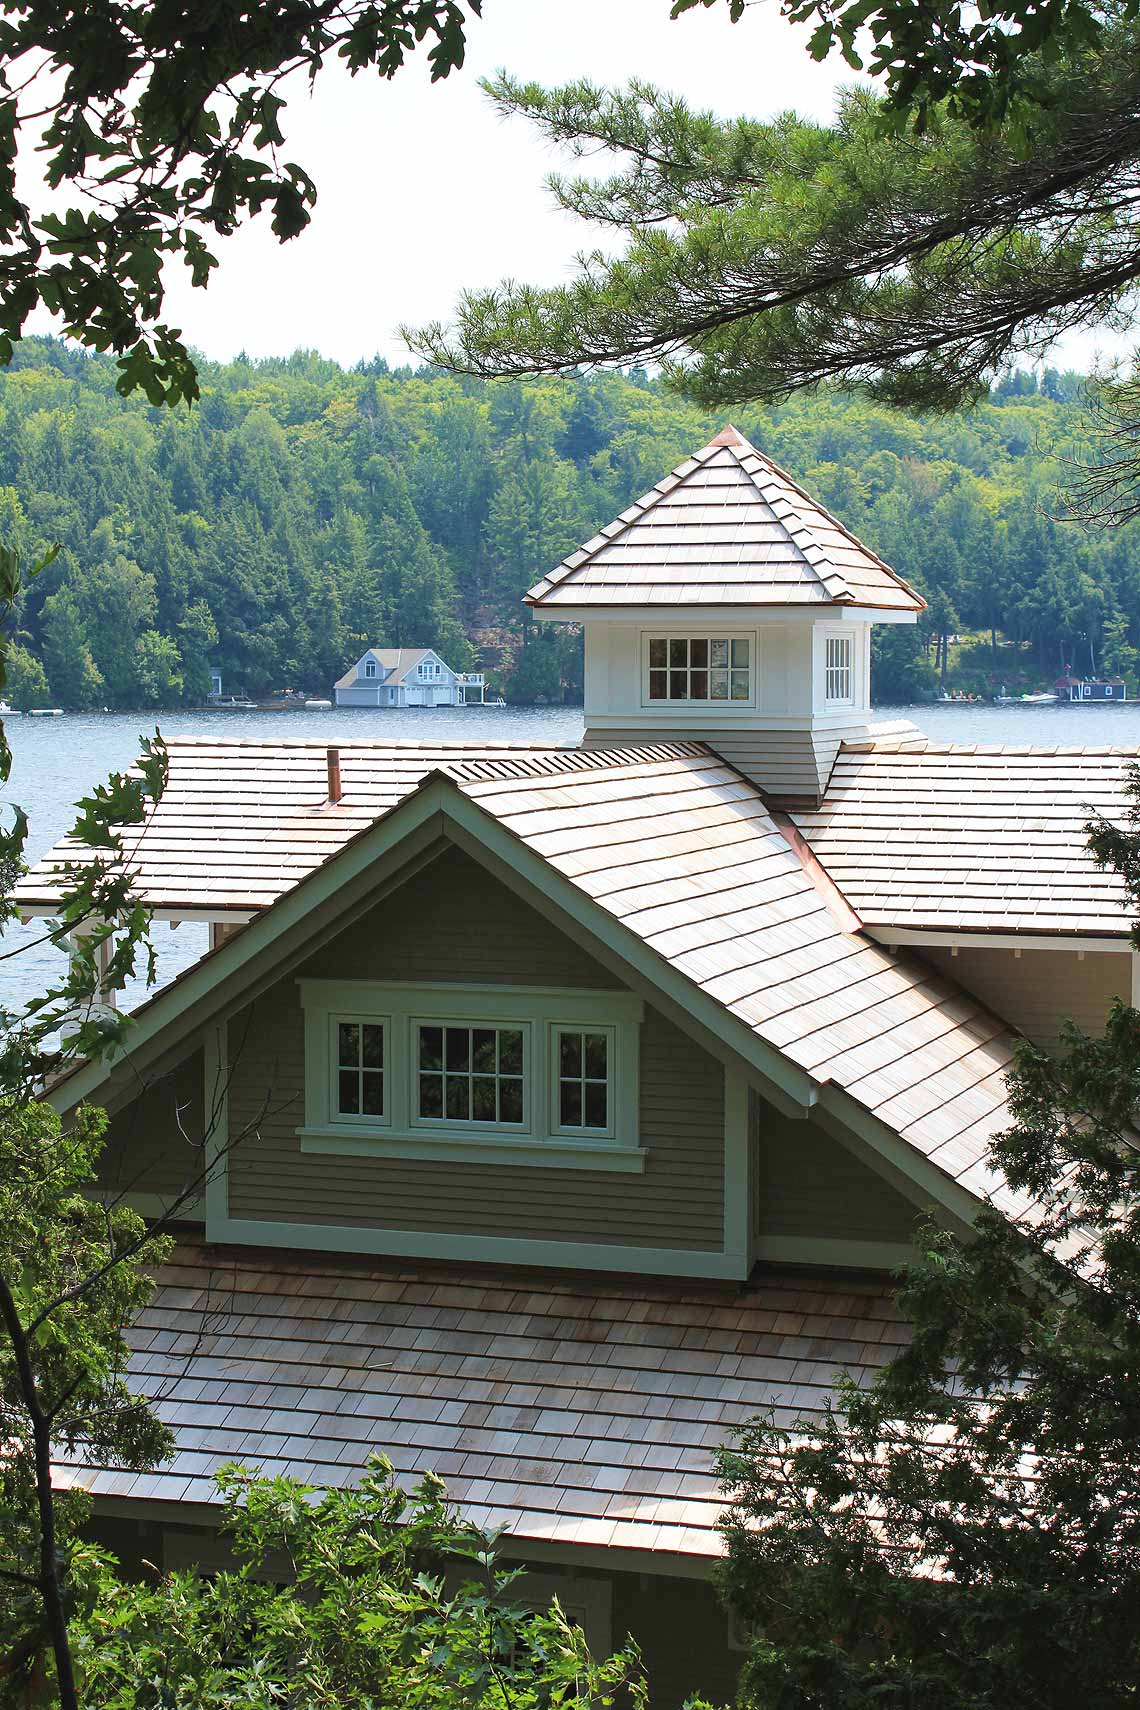 Lake Muskoka Boathouse (14) - Ontario Cottage and Vacation Home